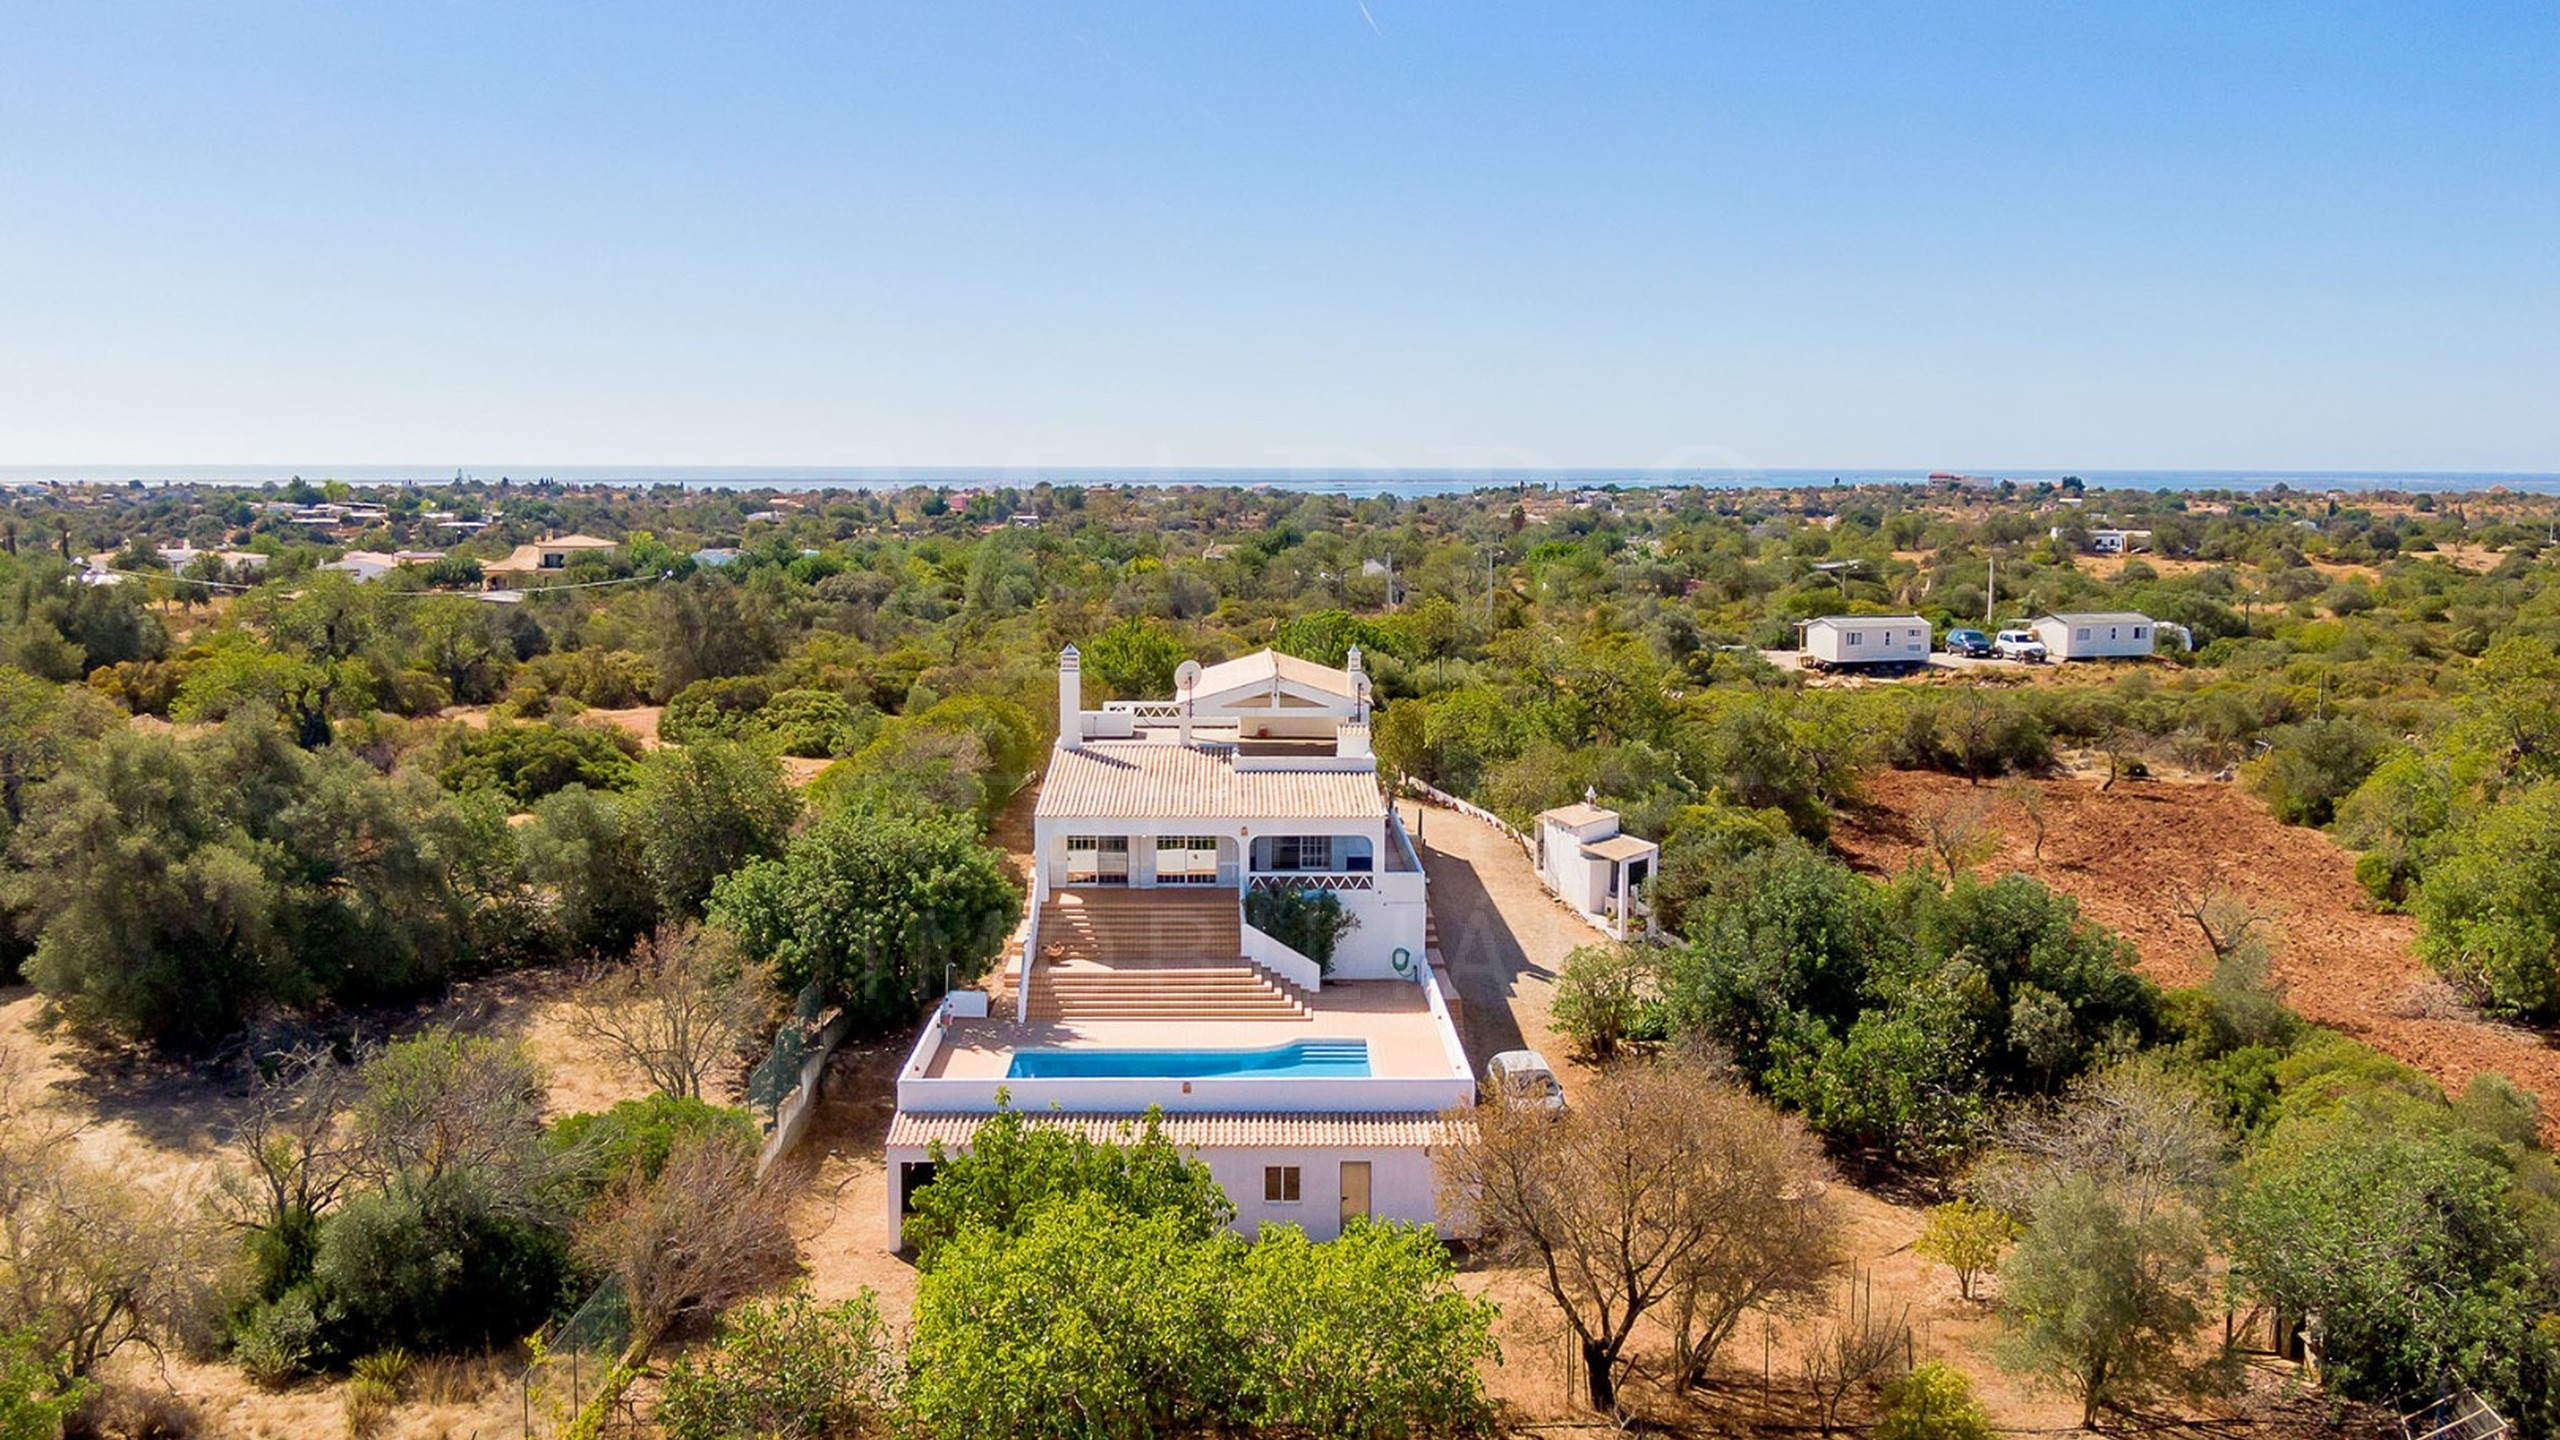 4 bedroom villa for sale in the countryside of Olhão, Algarve